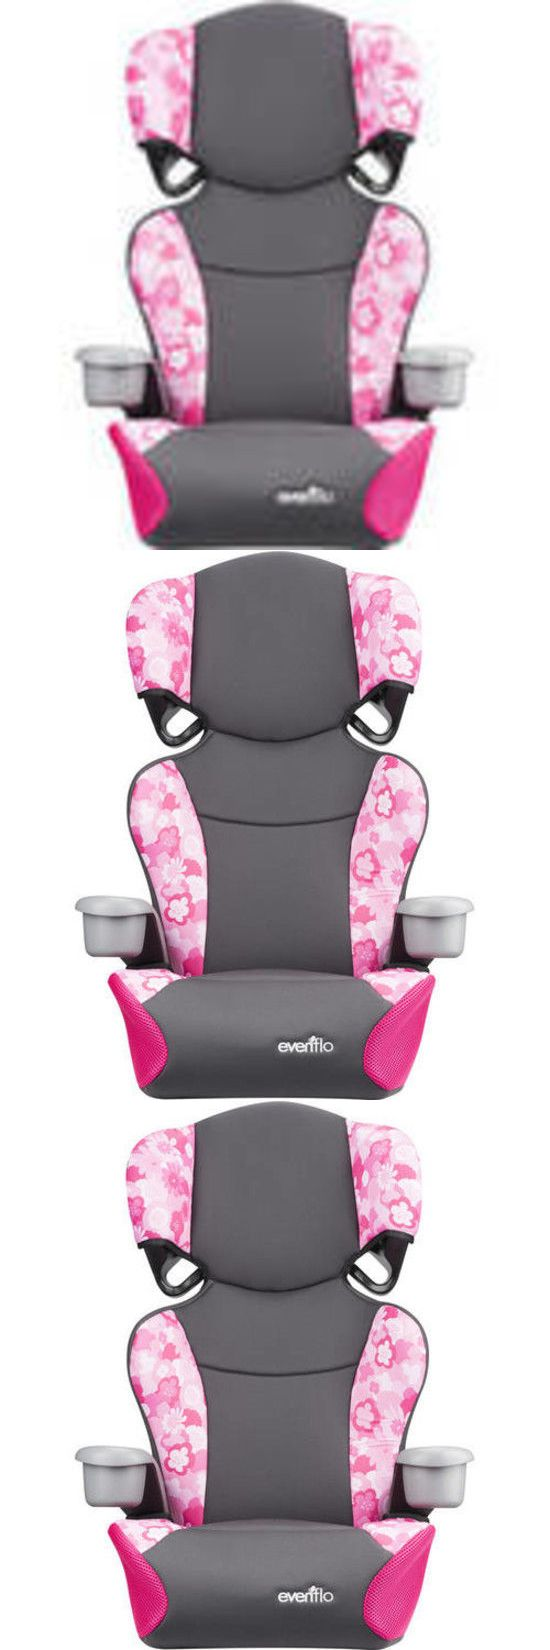 Big Kid High Back Car Booster Seat Toddler Baby Travel Chair w Cup ...